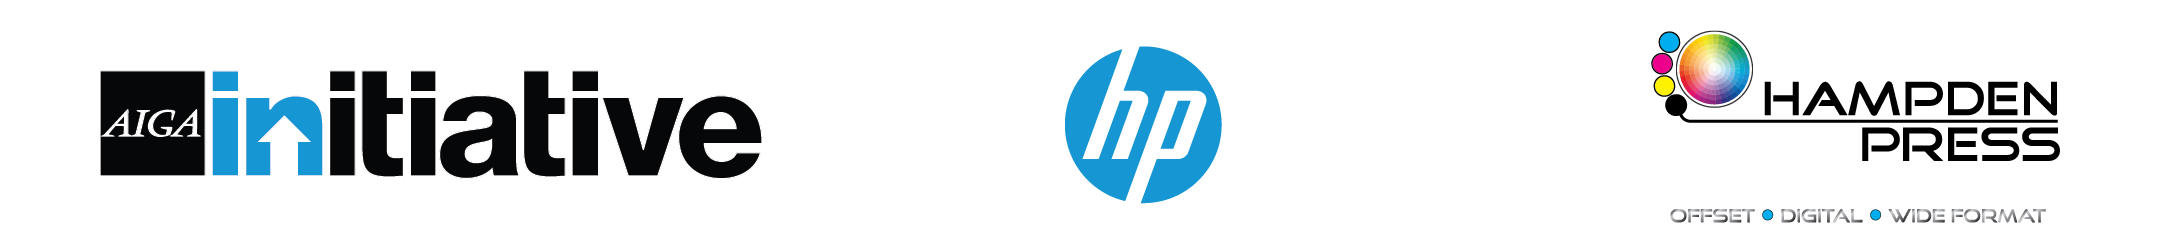 AIGA INitiative Logo, HP Logo, Hampden Press logo